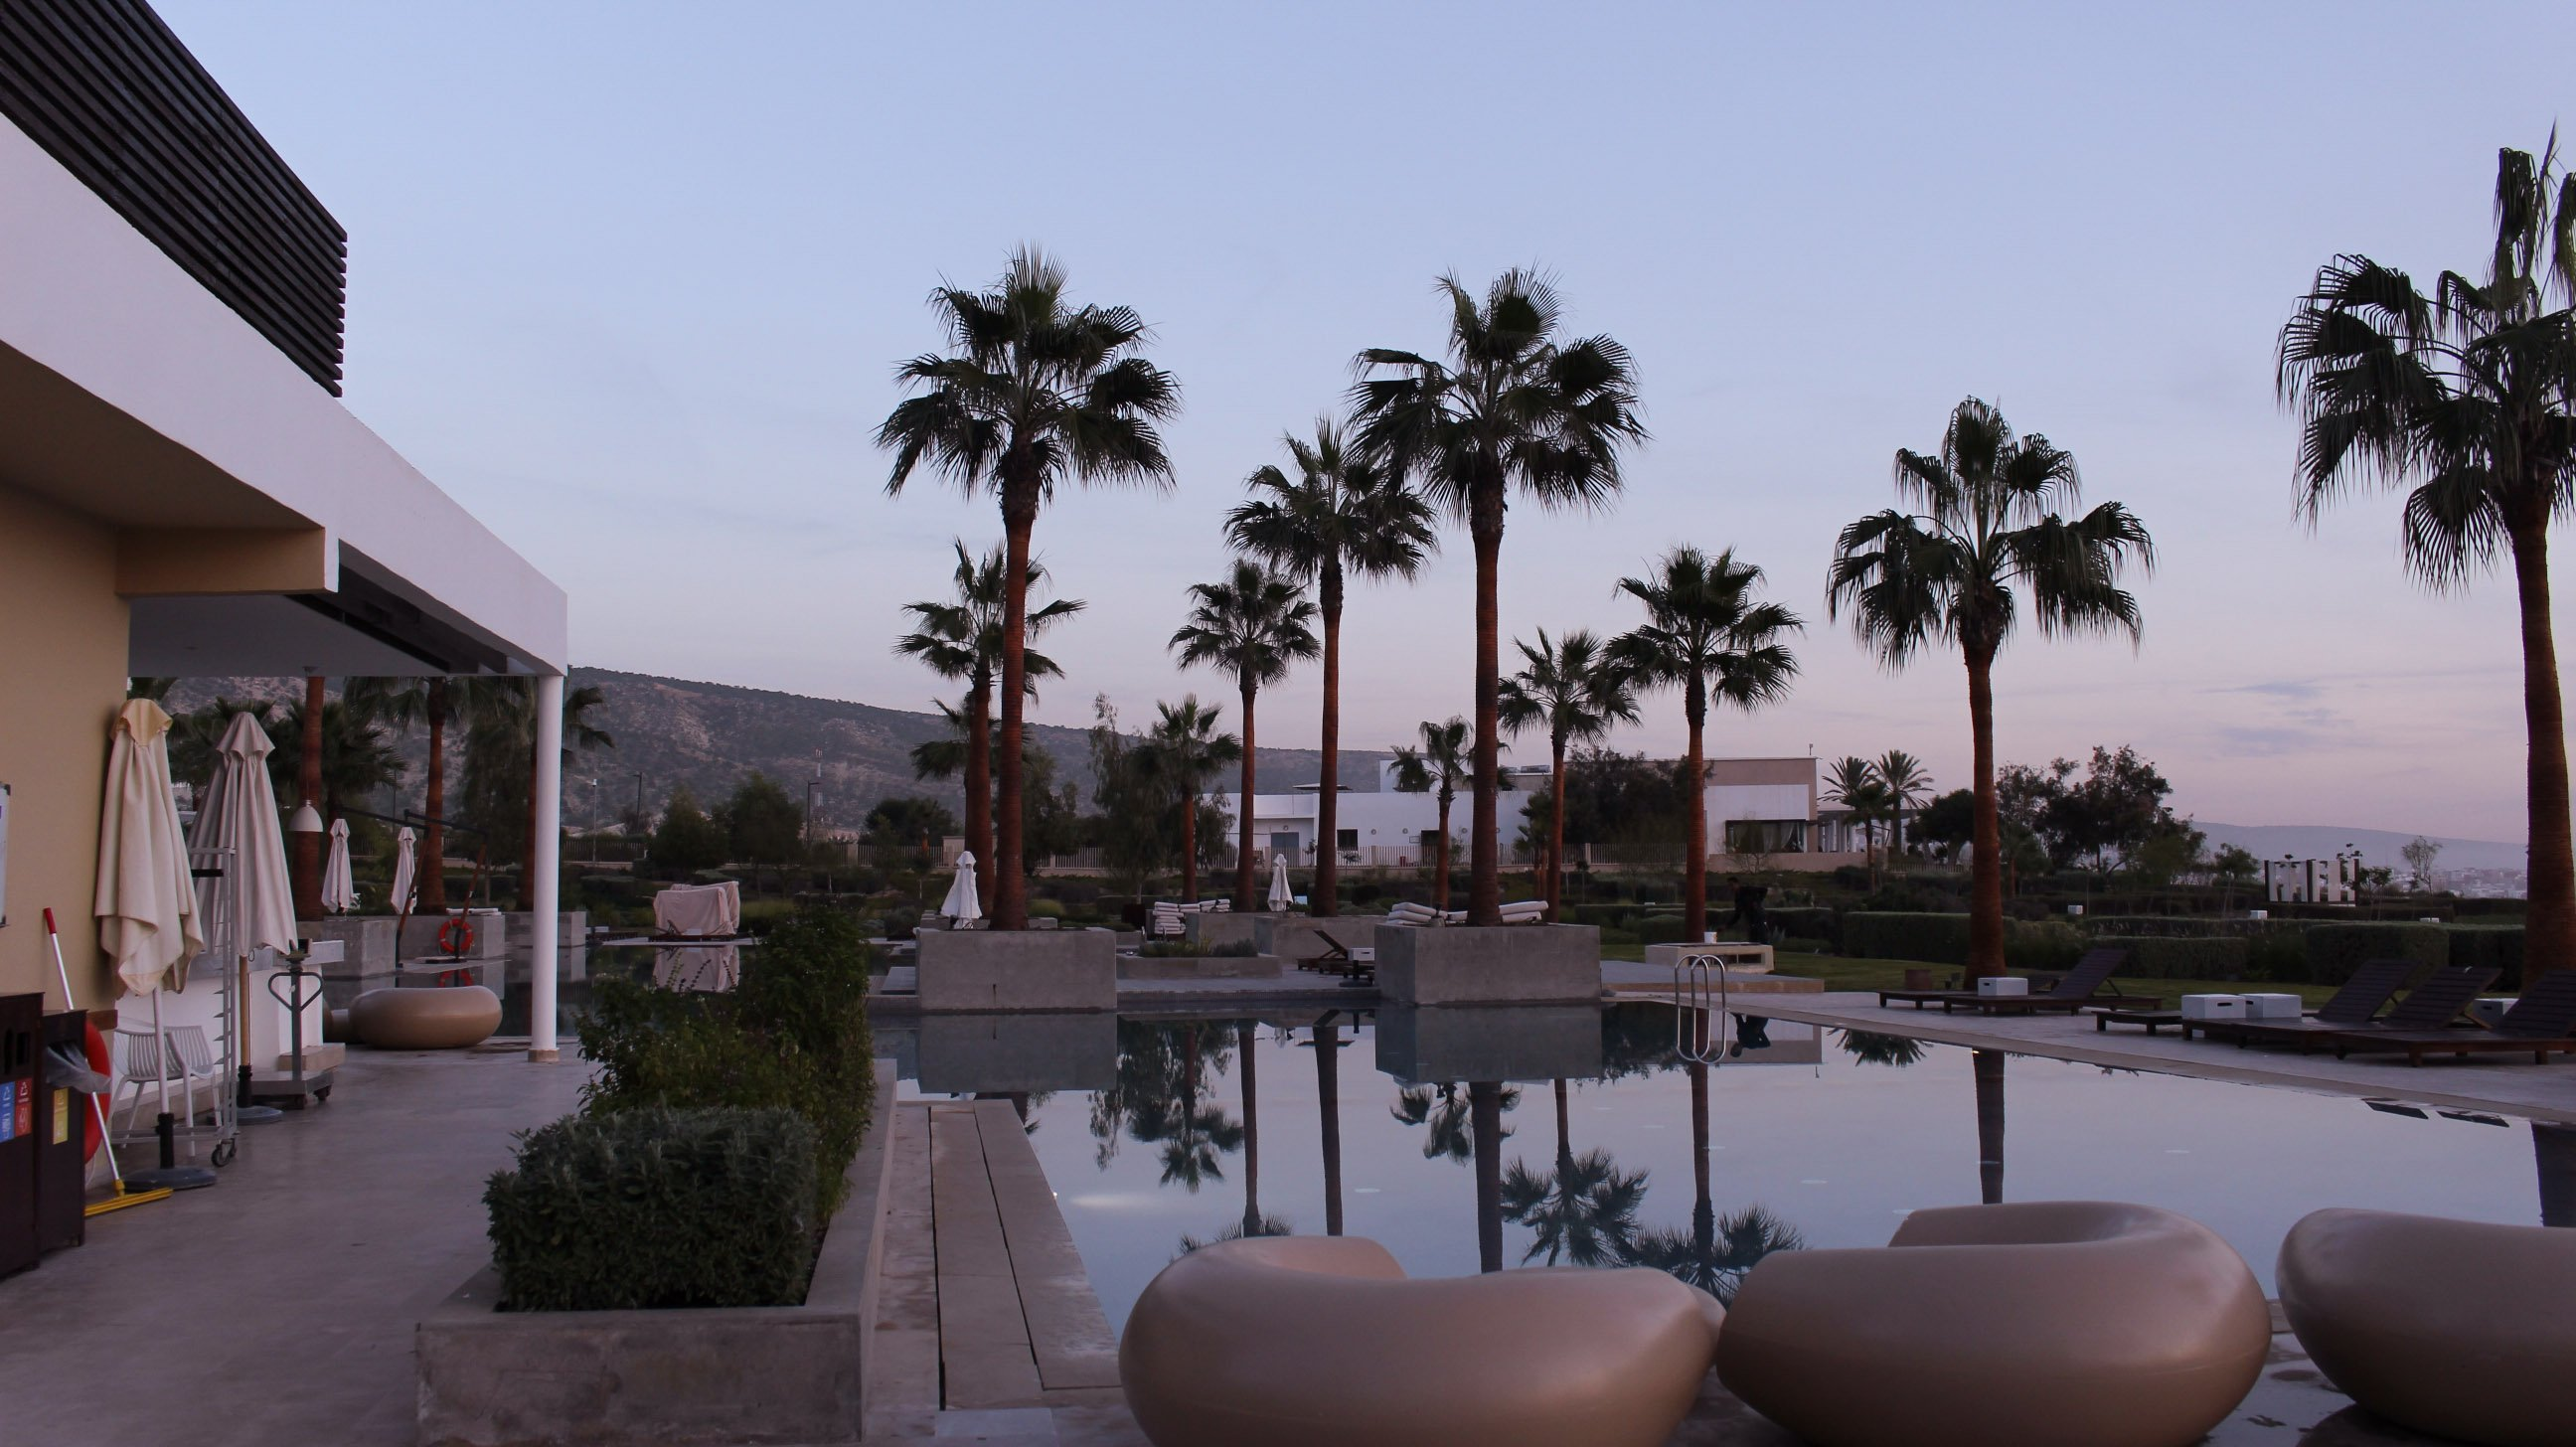 Morocco travel guide Agadir and Taghazout by Noni May (23 of 24)